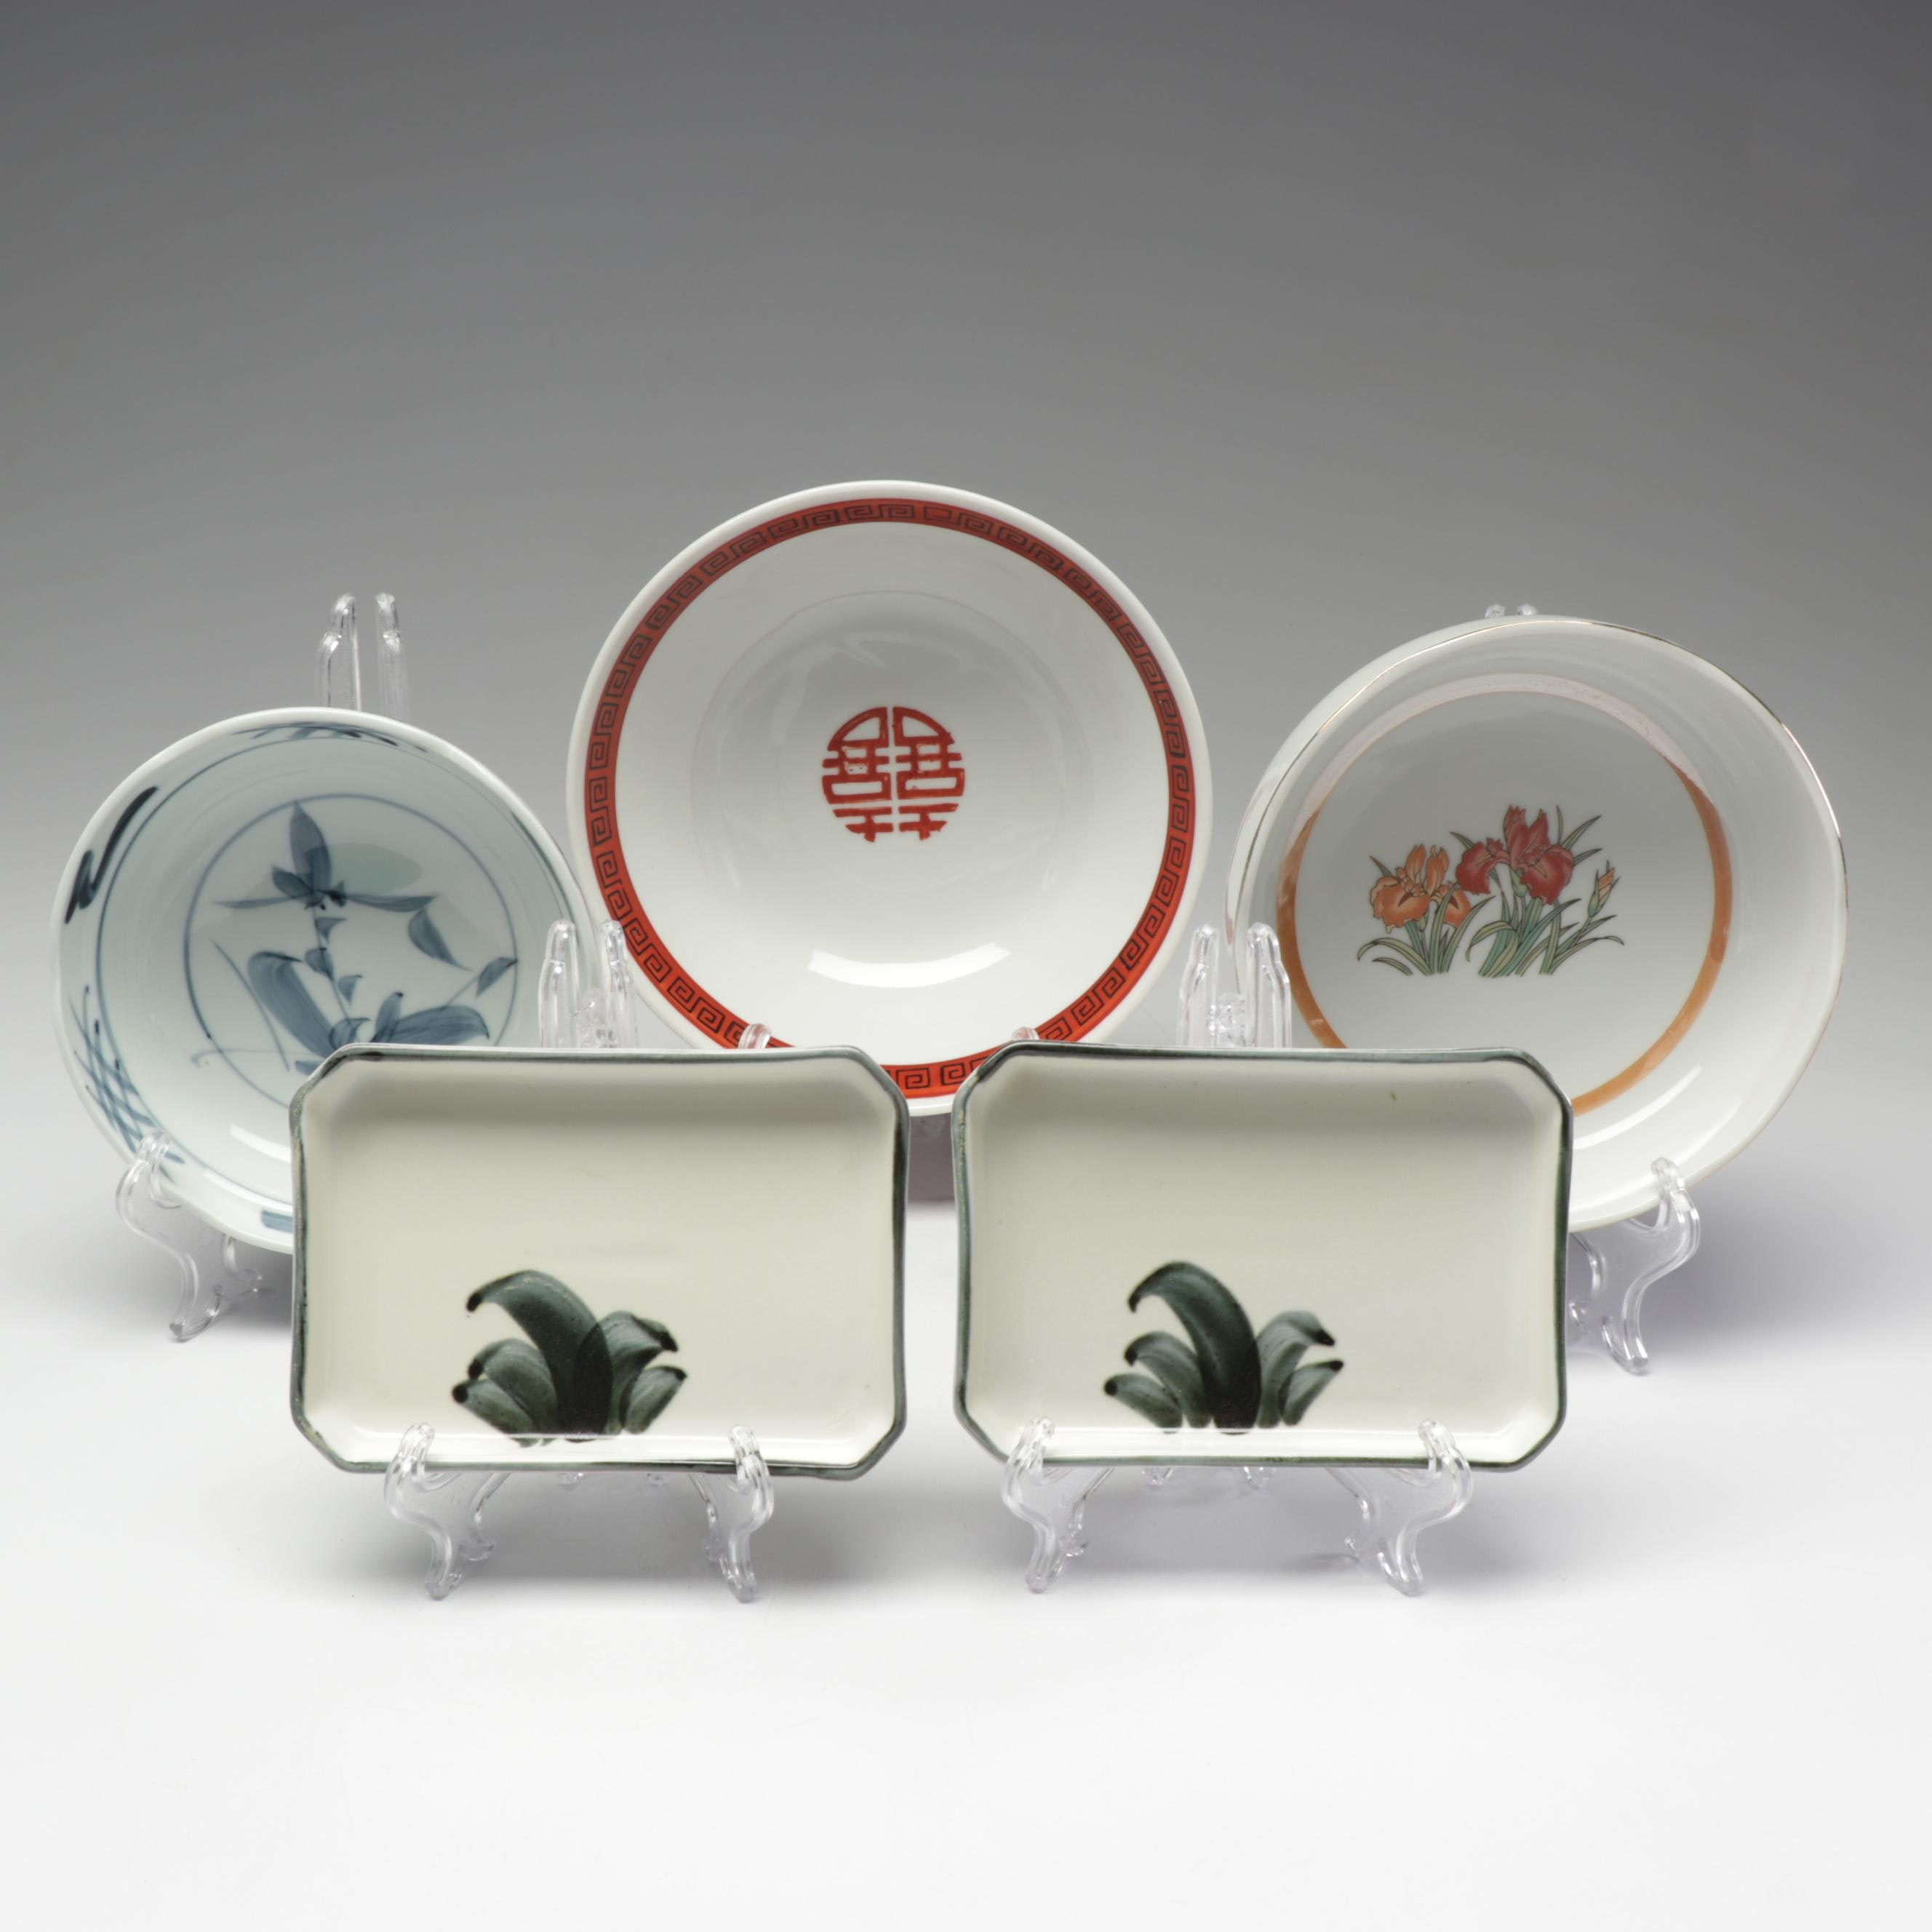 Chinese and Japanese Ceramic Donburi Bowls and Hand-Painted Dinnerware